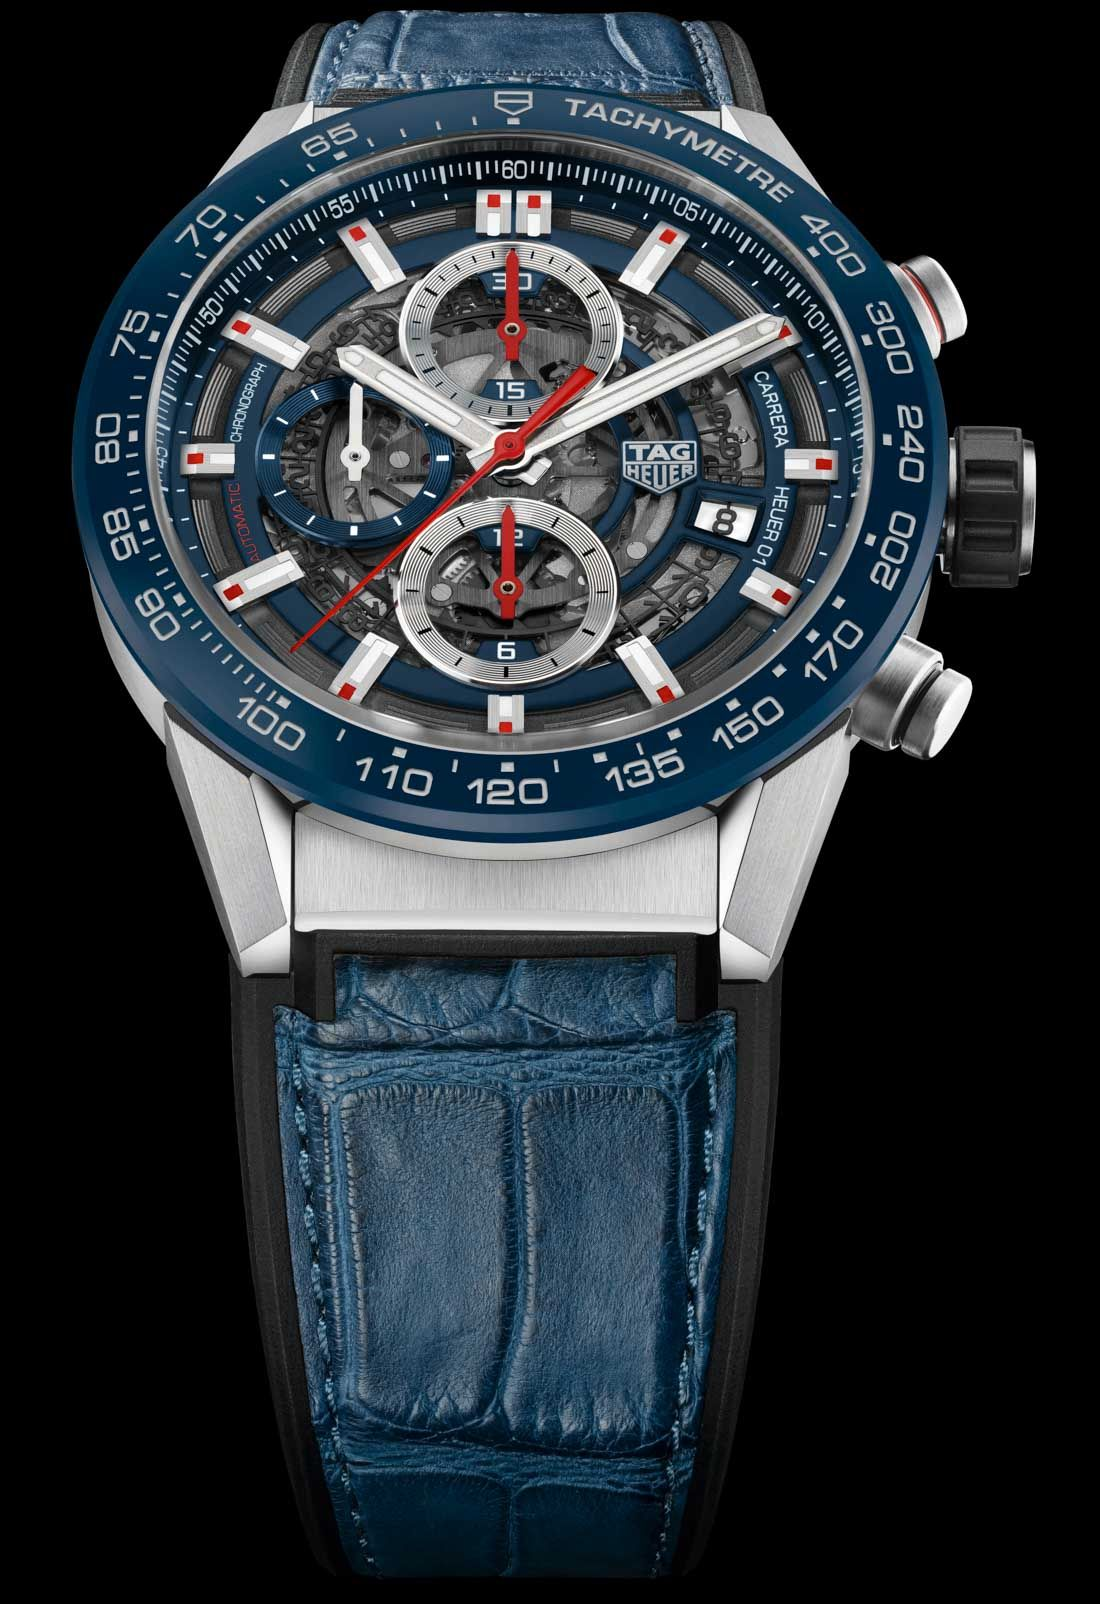 Federal Coronel complejidad  TAG Heuer Carrera Heuer-01 43mm Watches For 2017 | aBlogtoWatch | Tag heuer  carrera, Tag heuer, Tag heuer glasses